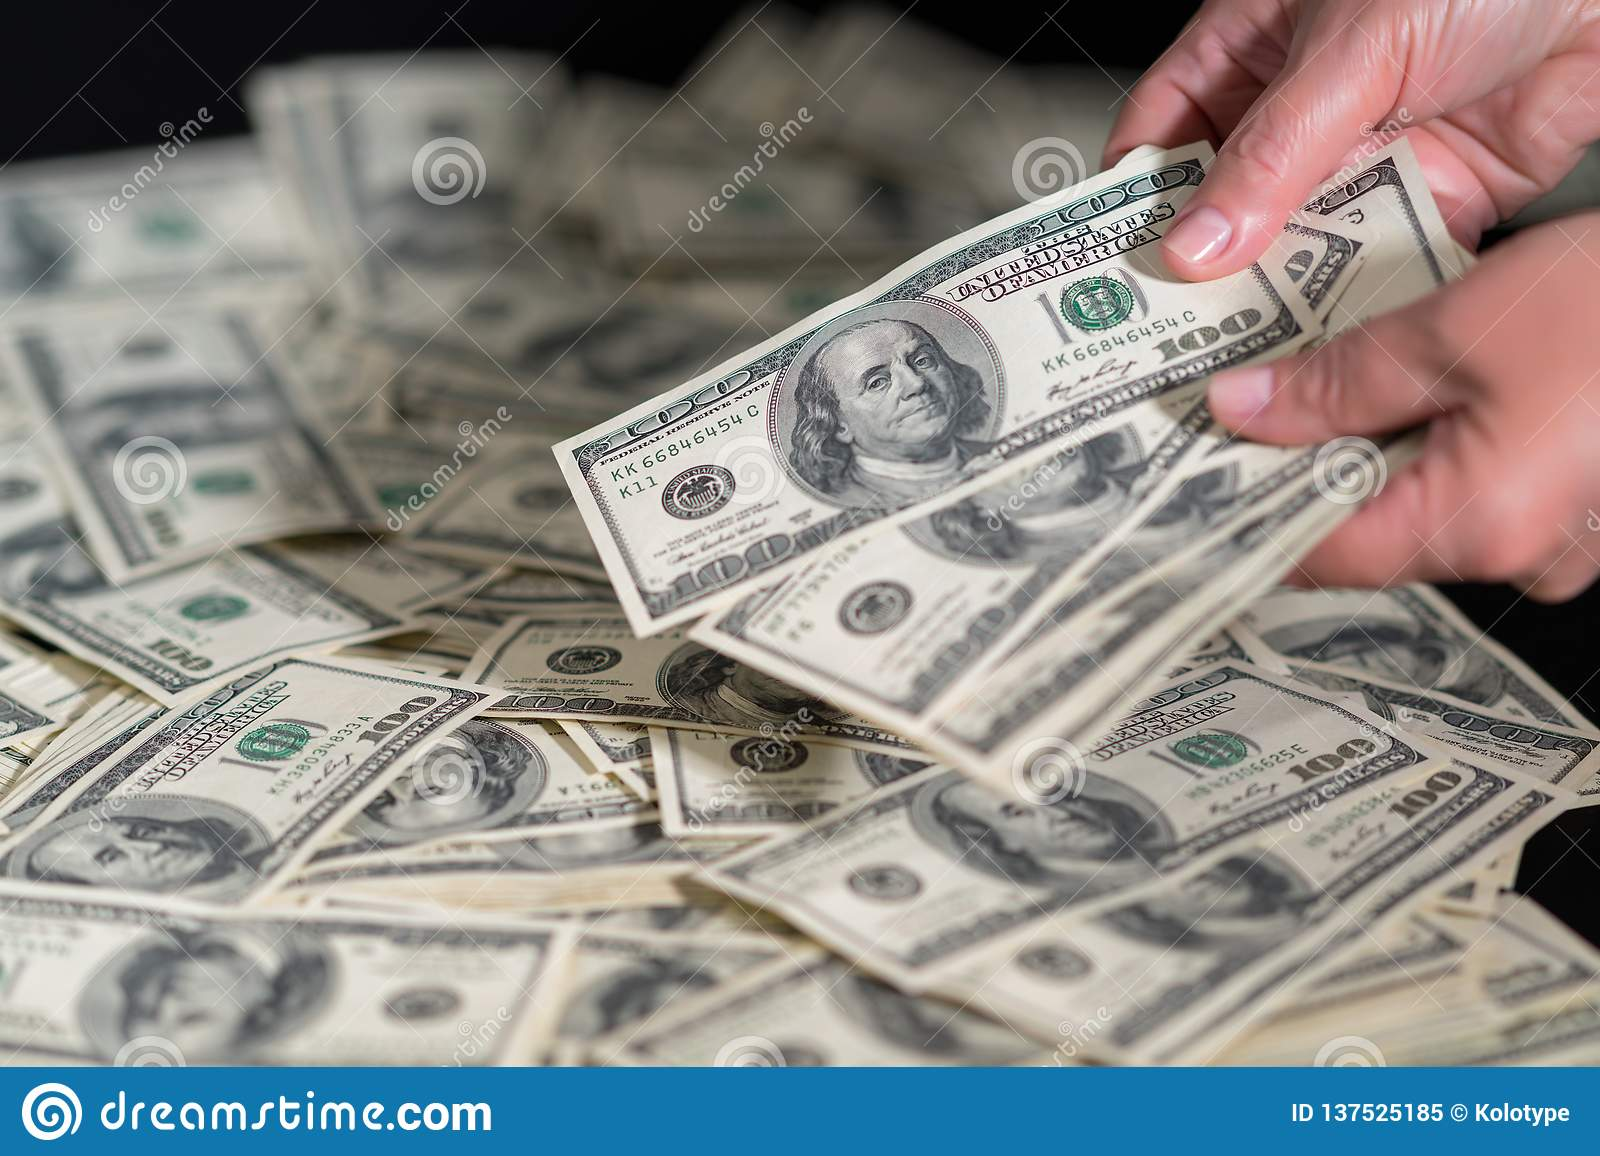 Person Counting 100 Dollar Bills Onto A Pile Stock Image